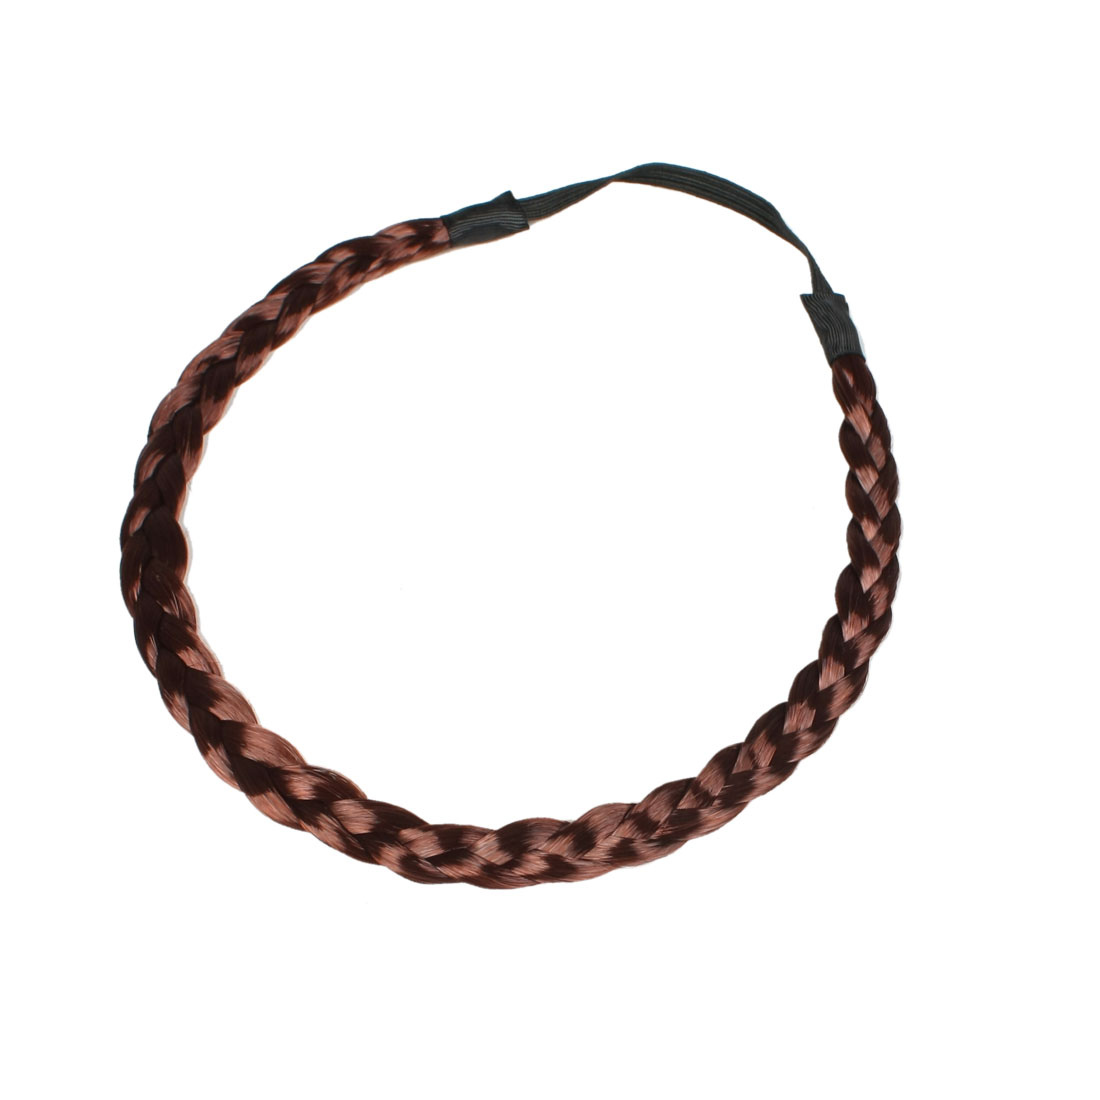 Wig Ponytail Burgundy Braided Elastic Hair Tie Band for Ladies Girls